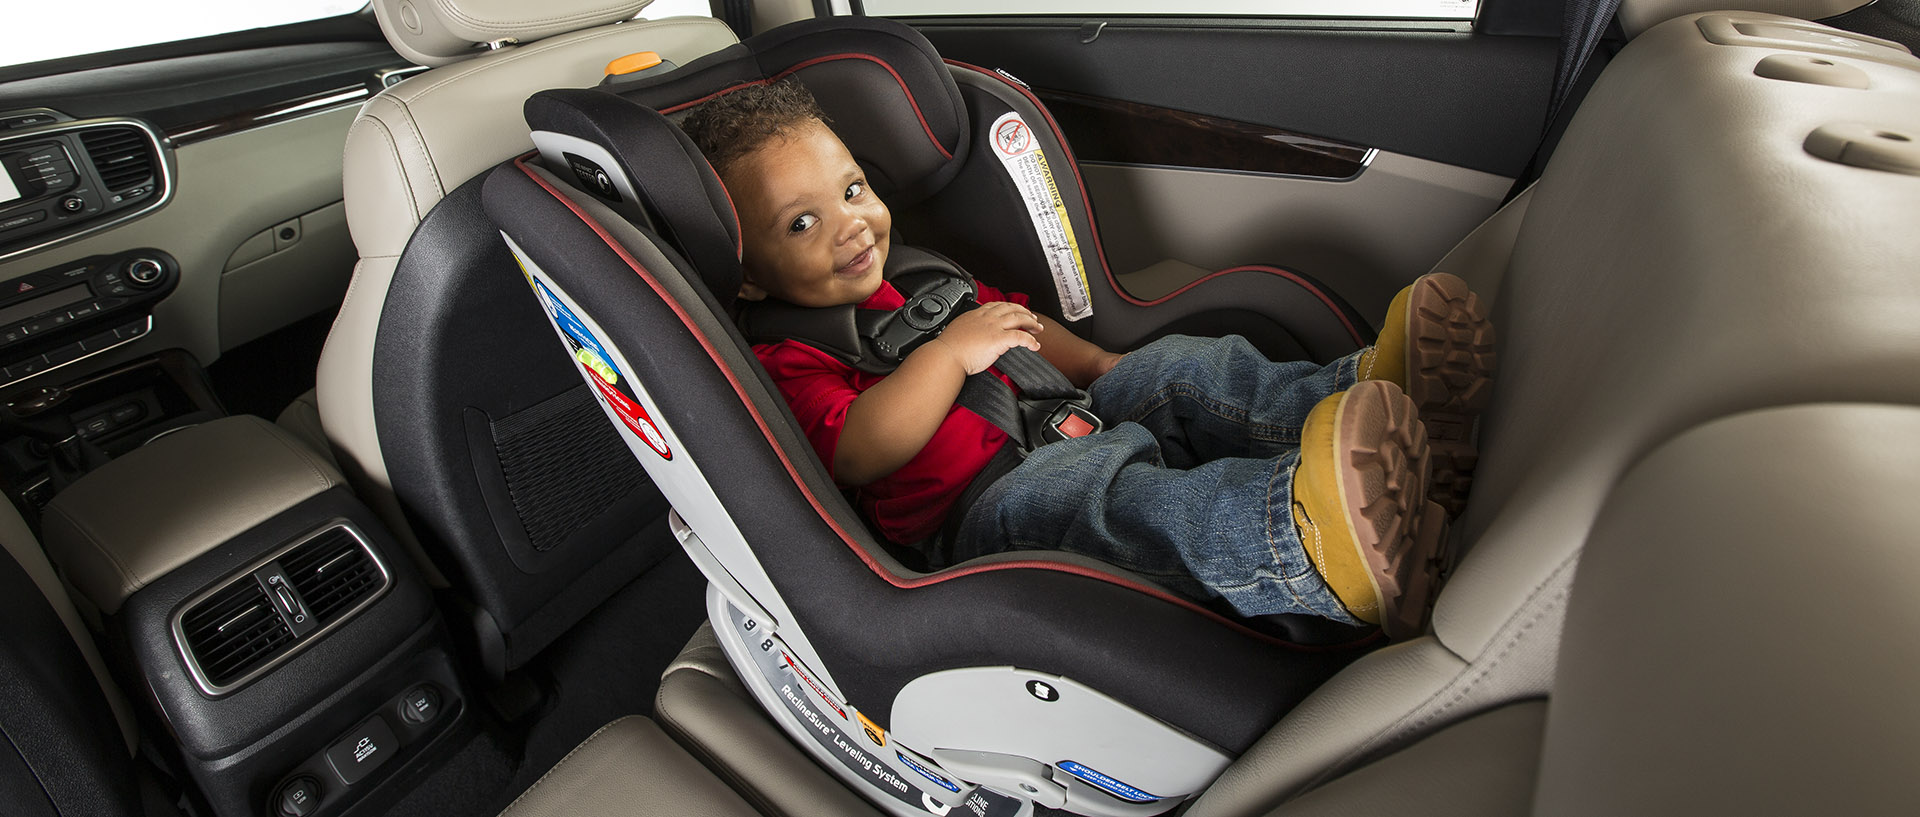 Buckle Up for Safety | Healthy Burnett